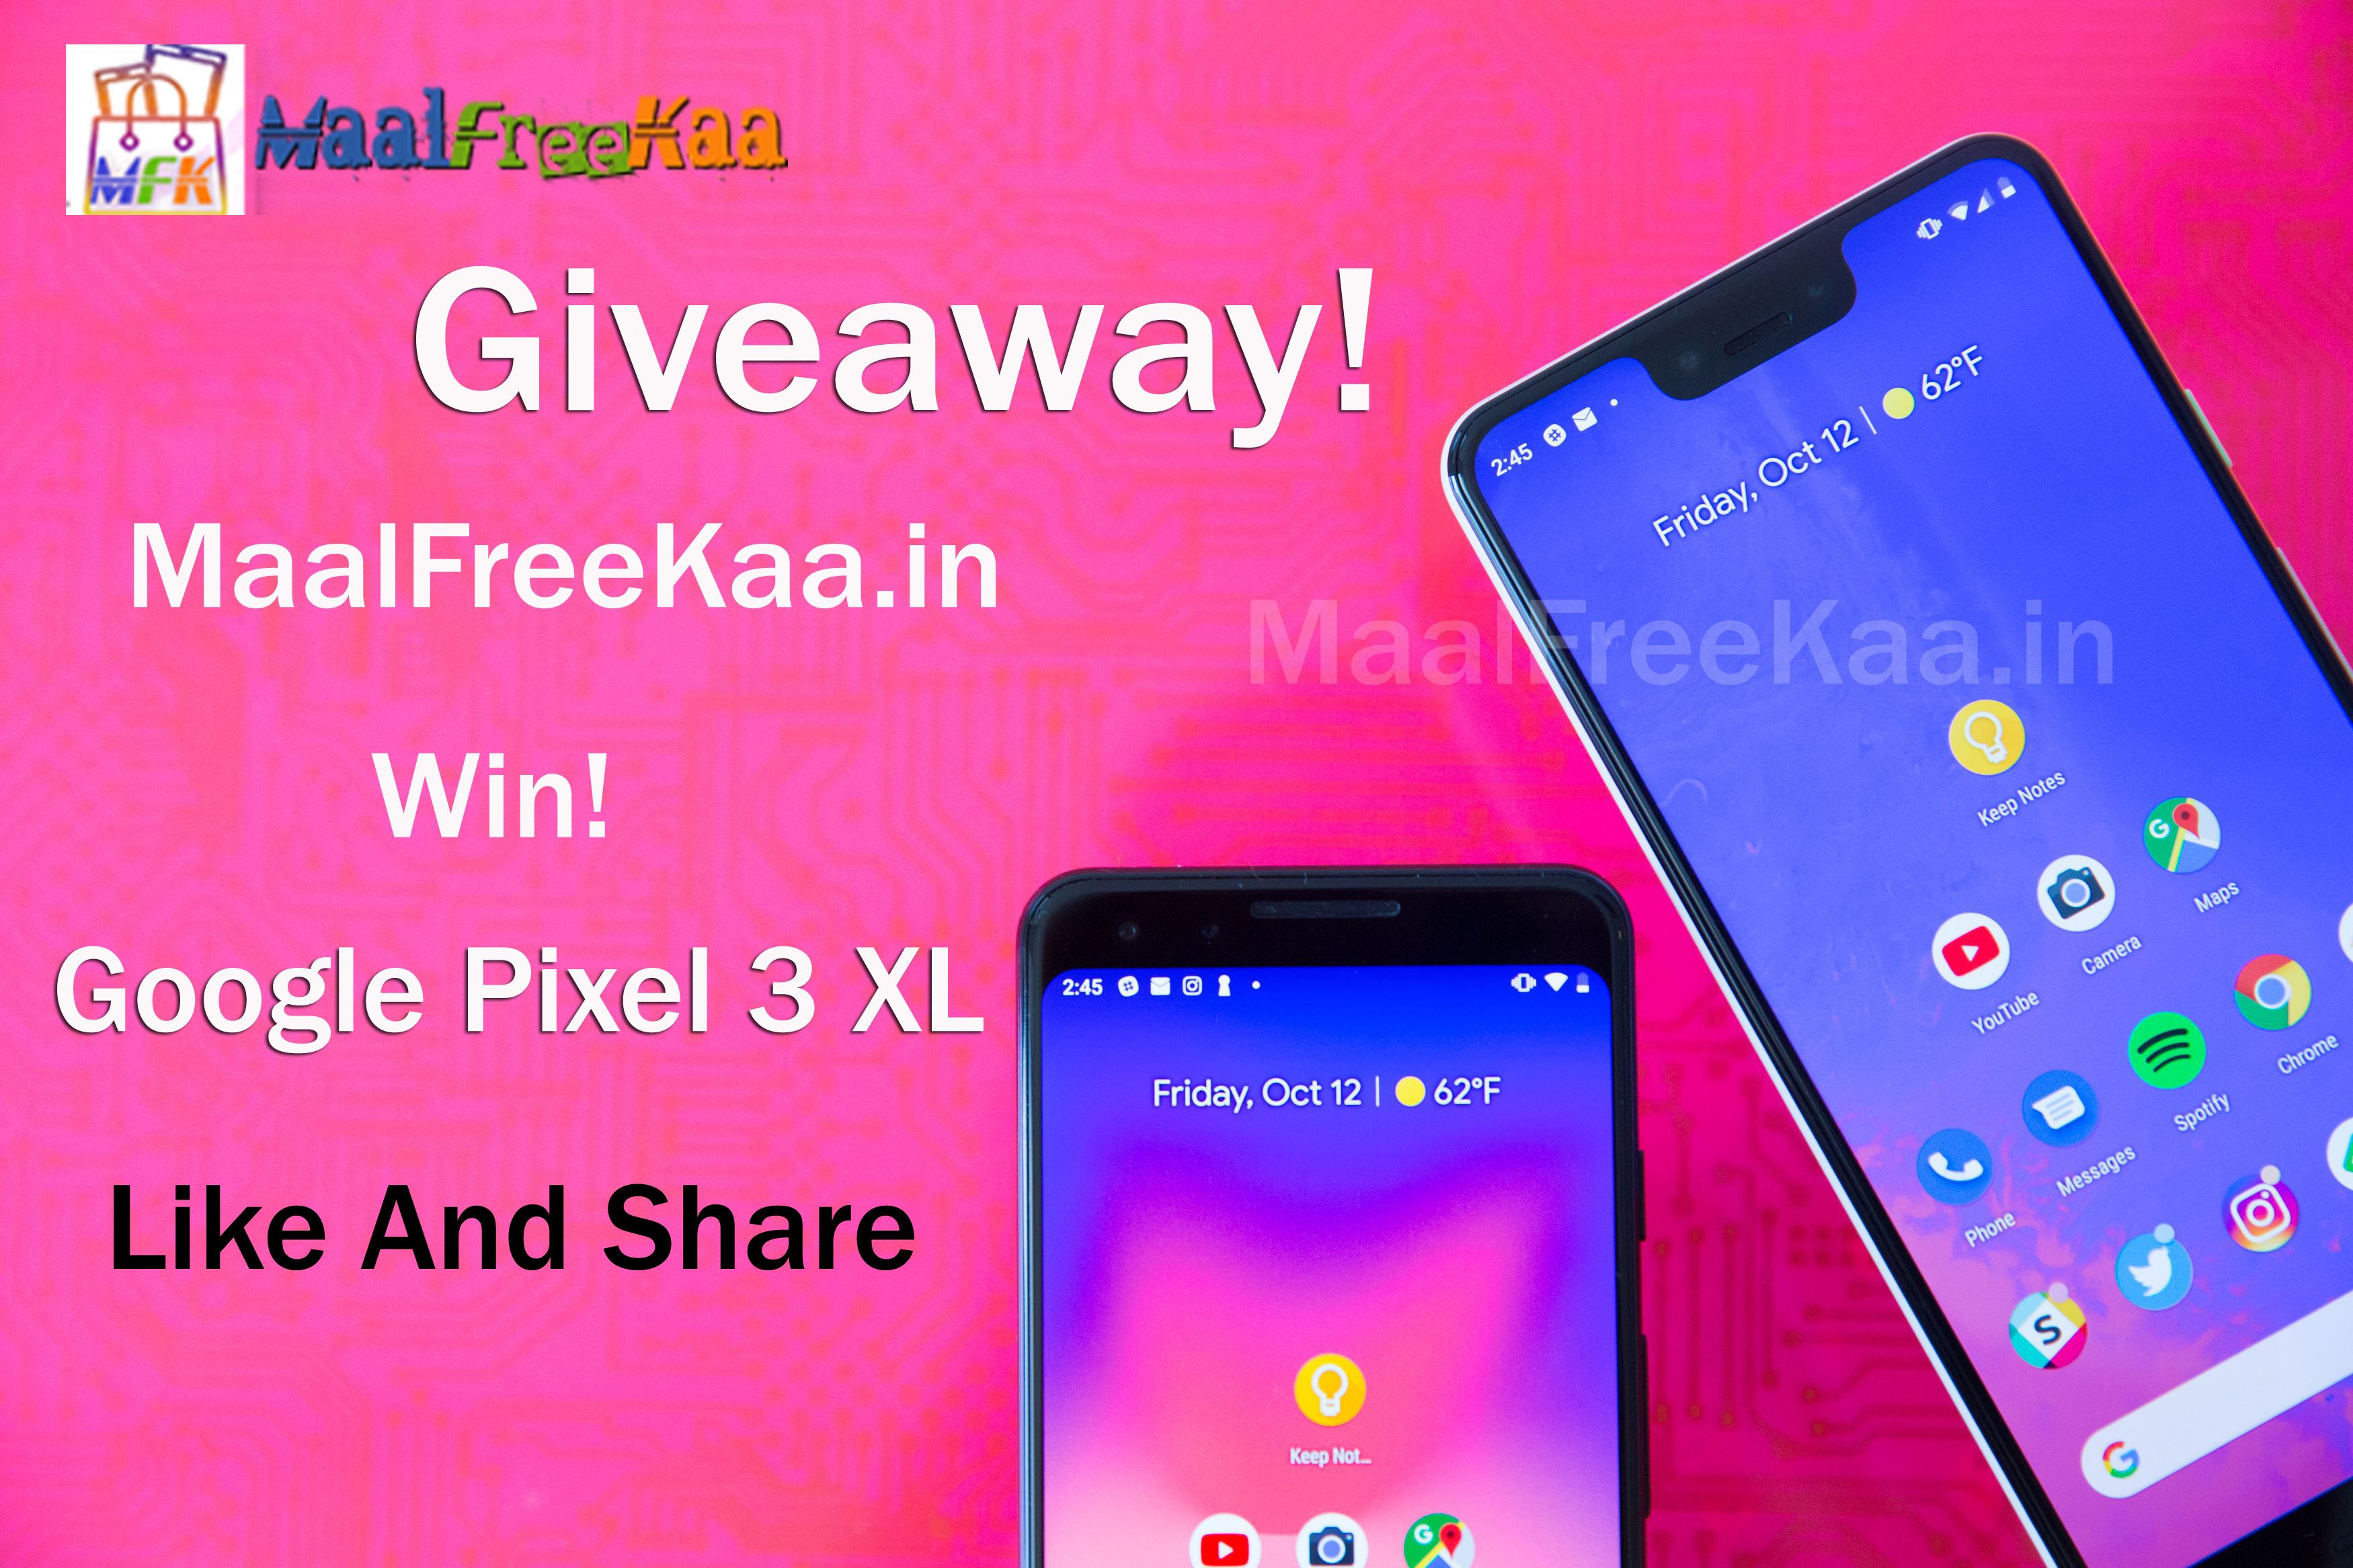 Google Pixel 3 XL Android Smartphone Giveaway Android